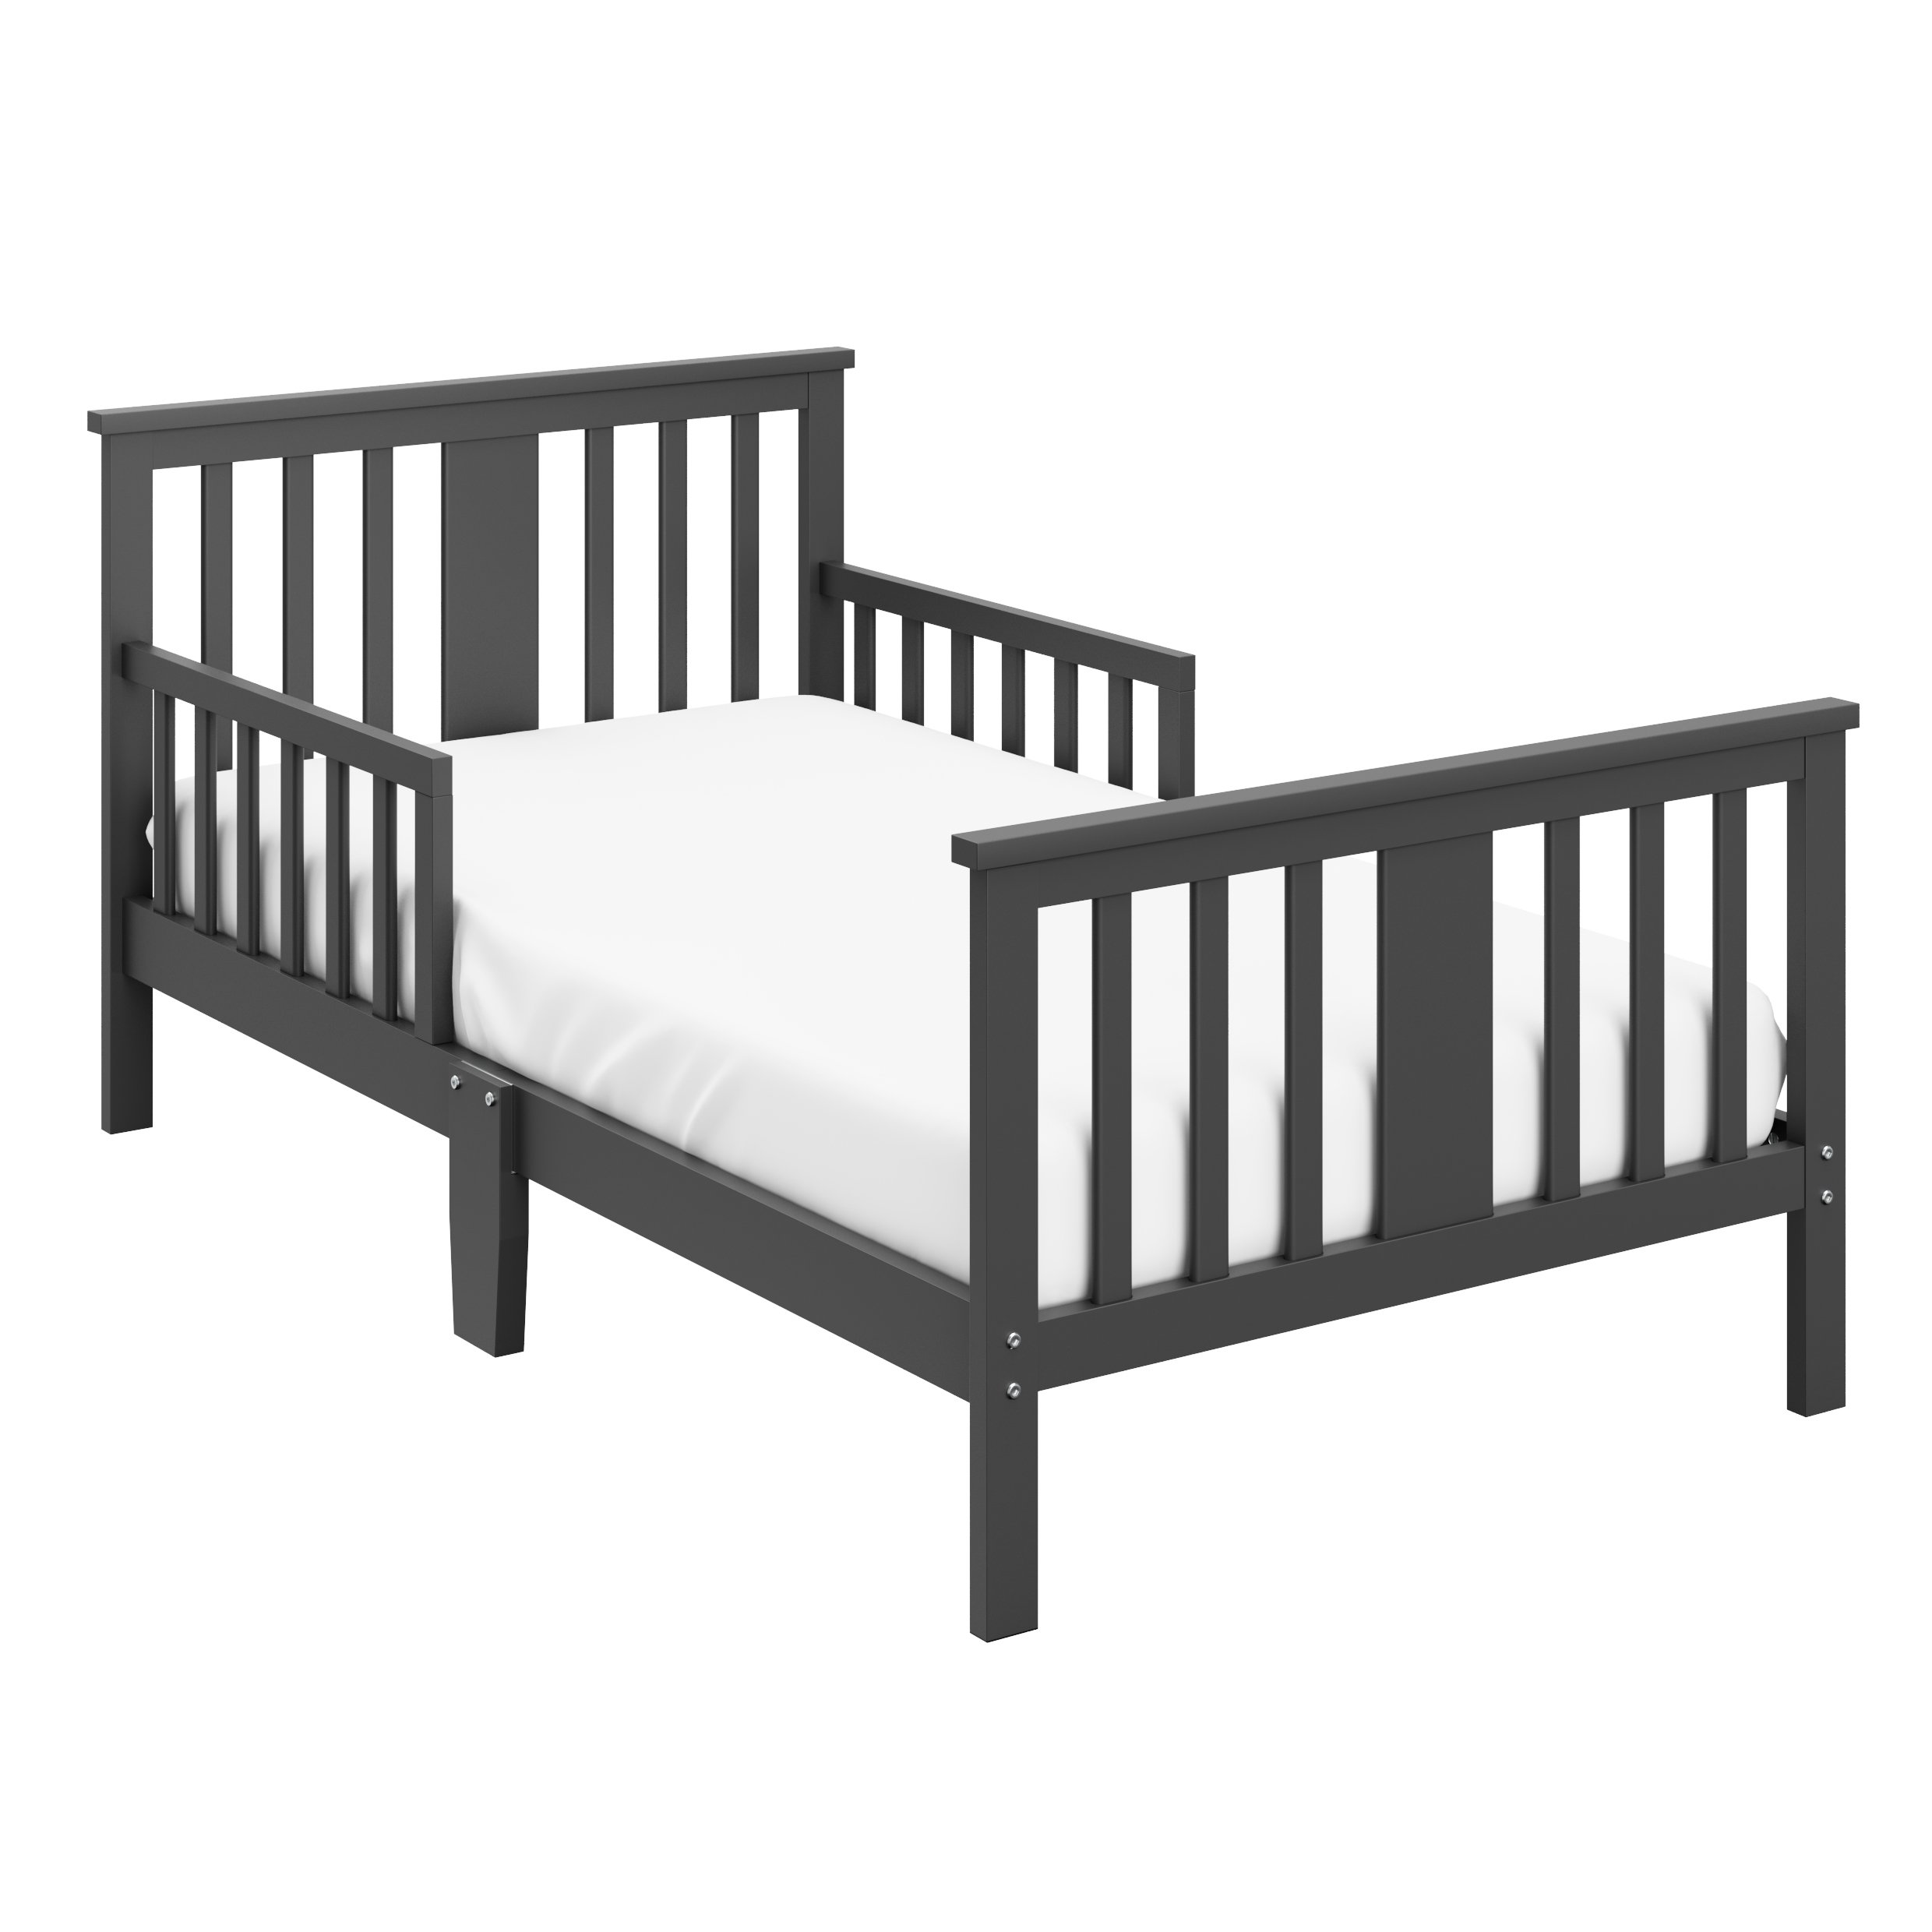 Storkcraft Mission Ridge Toddler Bed Gray, Fits Standard-Size Toddler Mattress (Not Included), Guardrail on Both Sides, Meets or Exceeds All Federal Safety Standards, Pine & Composite Construction by Stork Craft